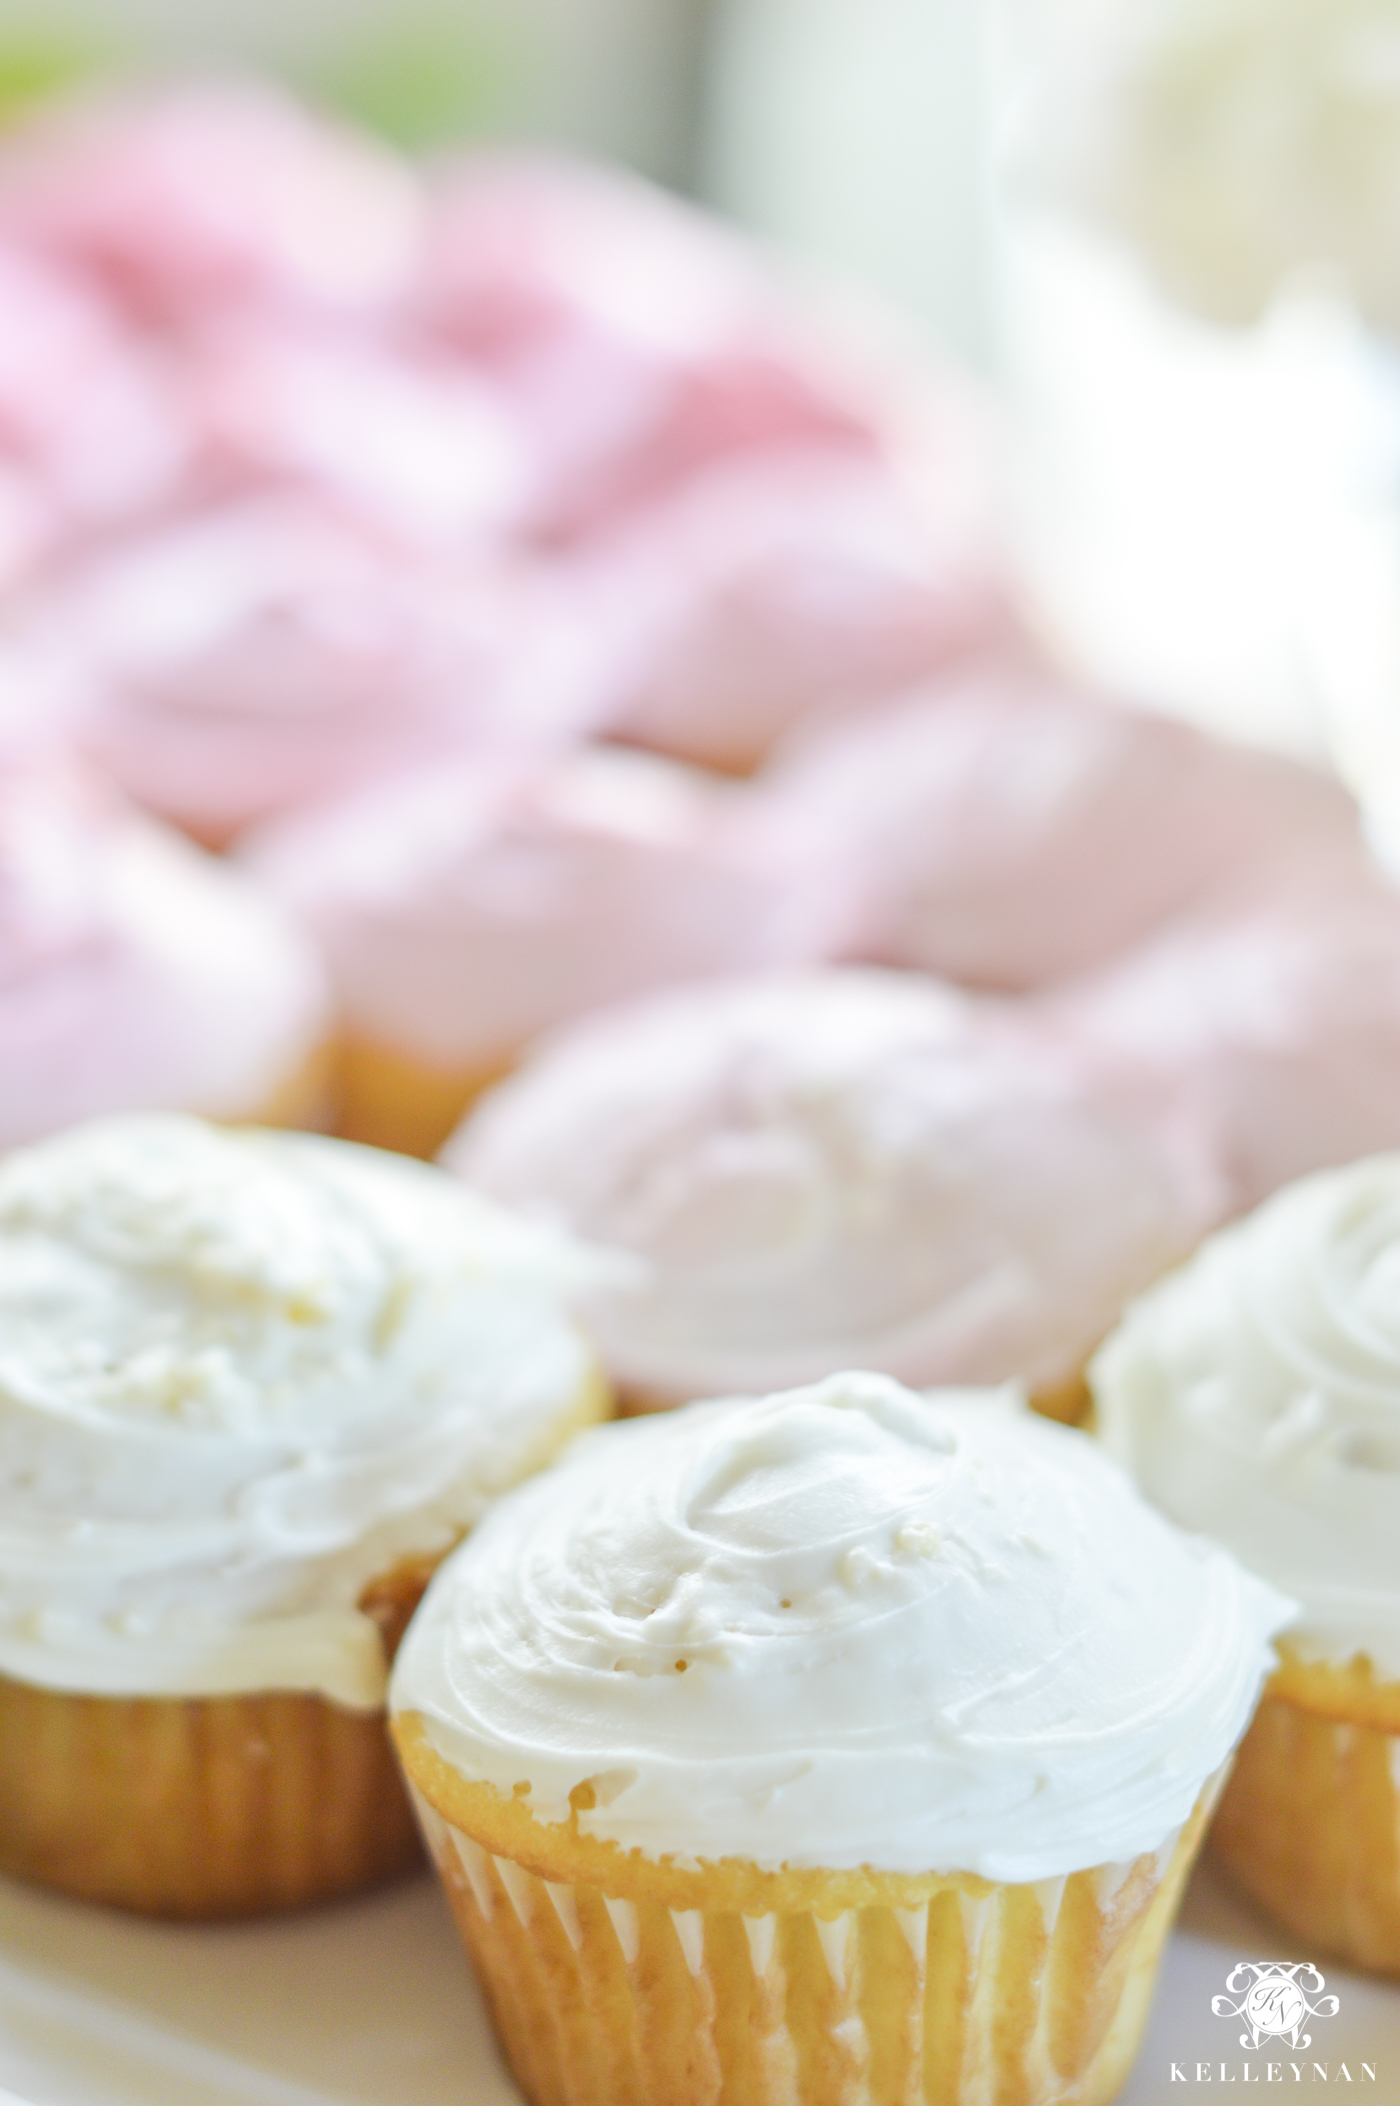 Simple Ombre Cupcakes with Canned Frosting - Kelley Nan